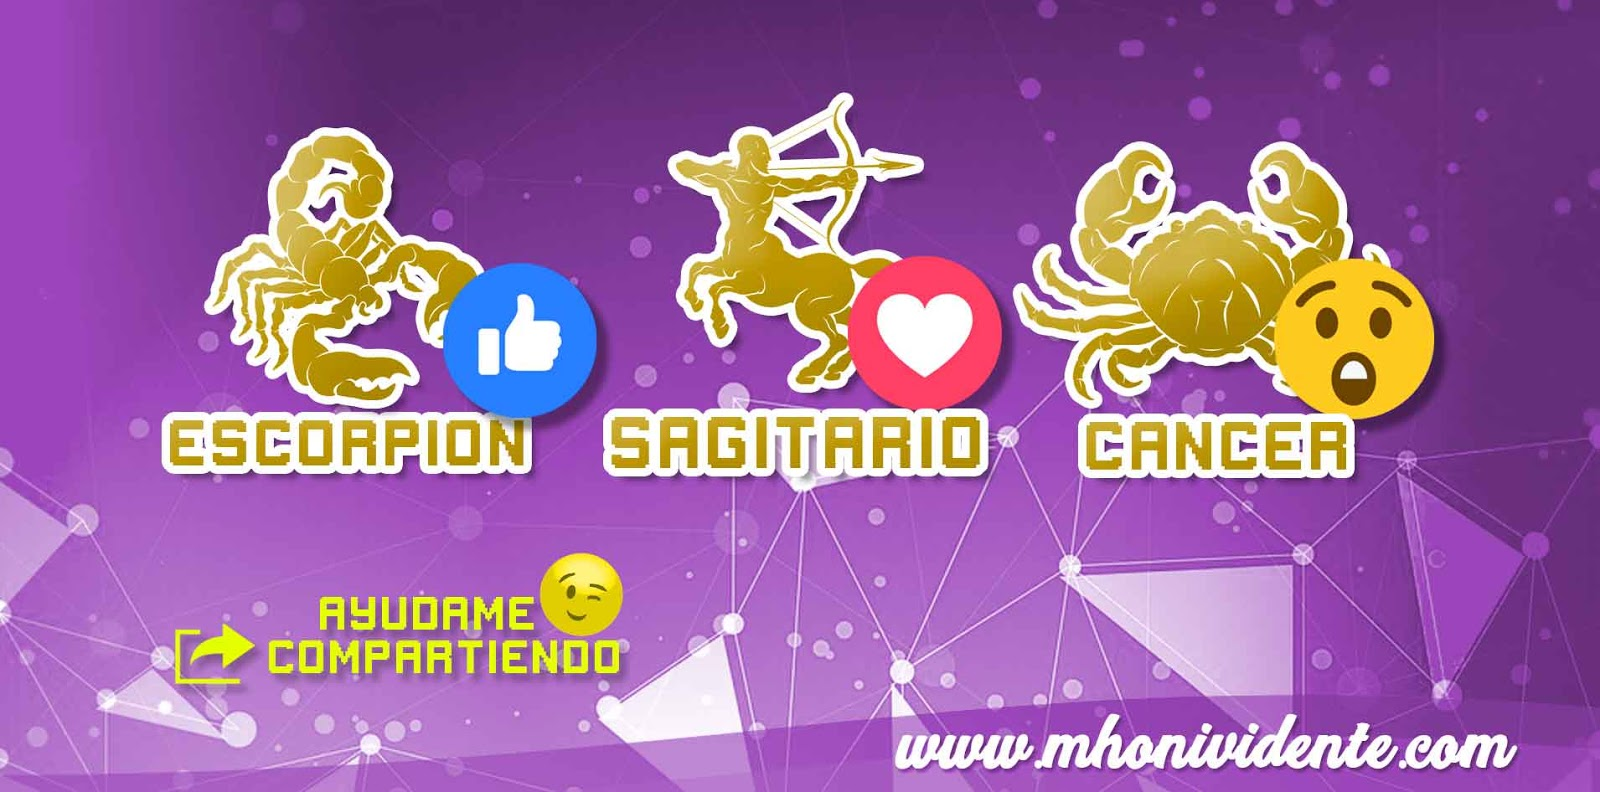 ESCORPION, SAGITARIO Y CANCER - HORÓSCOPO JUEVES 18 DE ABRIL 2019